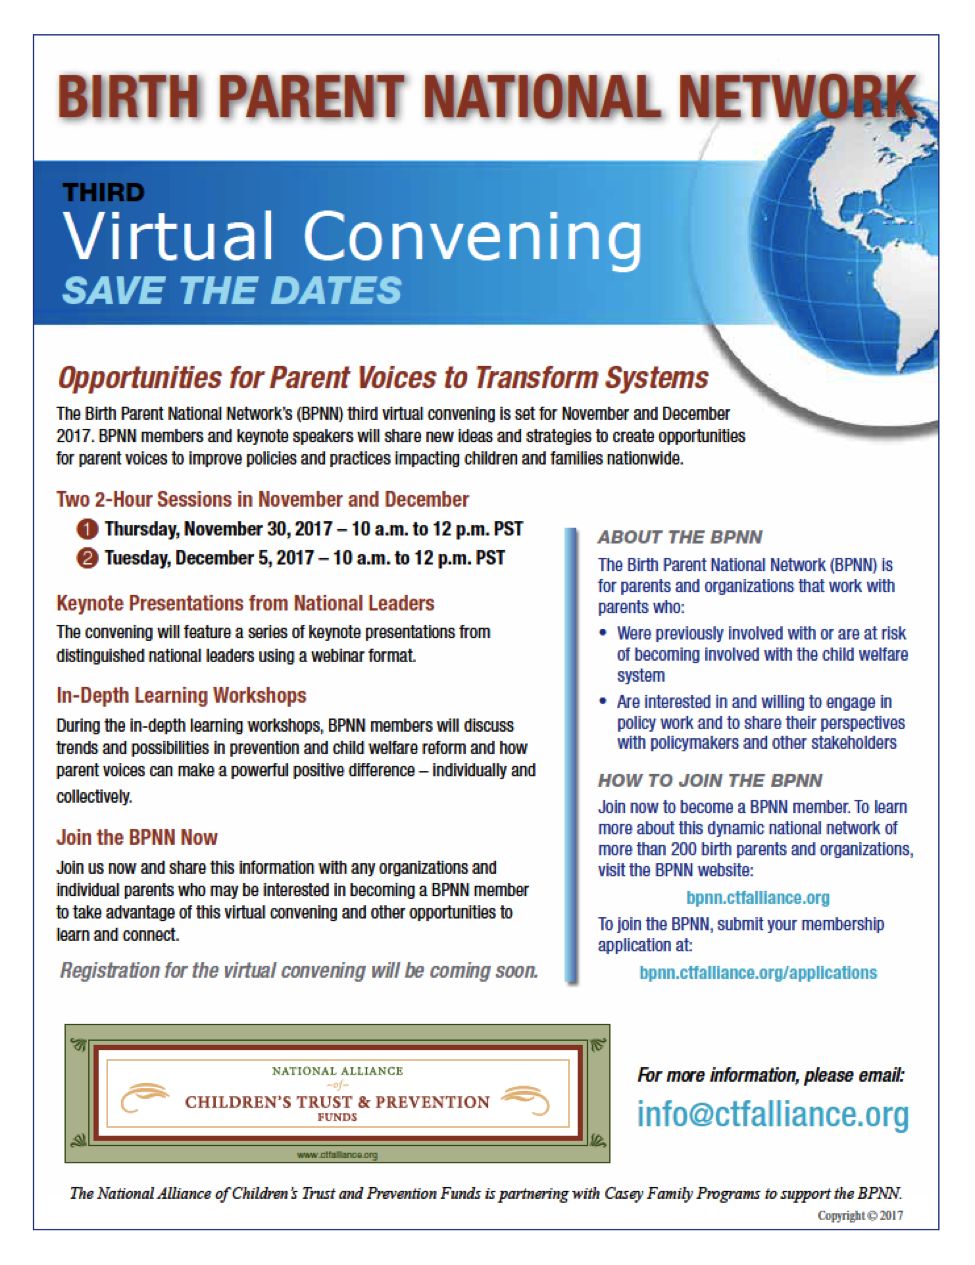 BPNN virtual convention